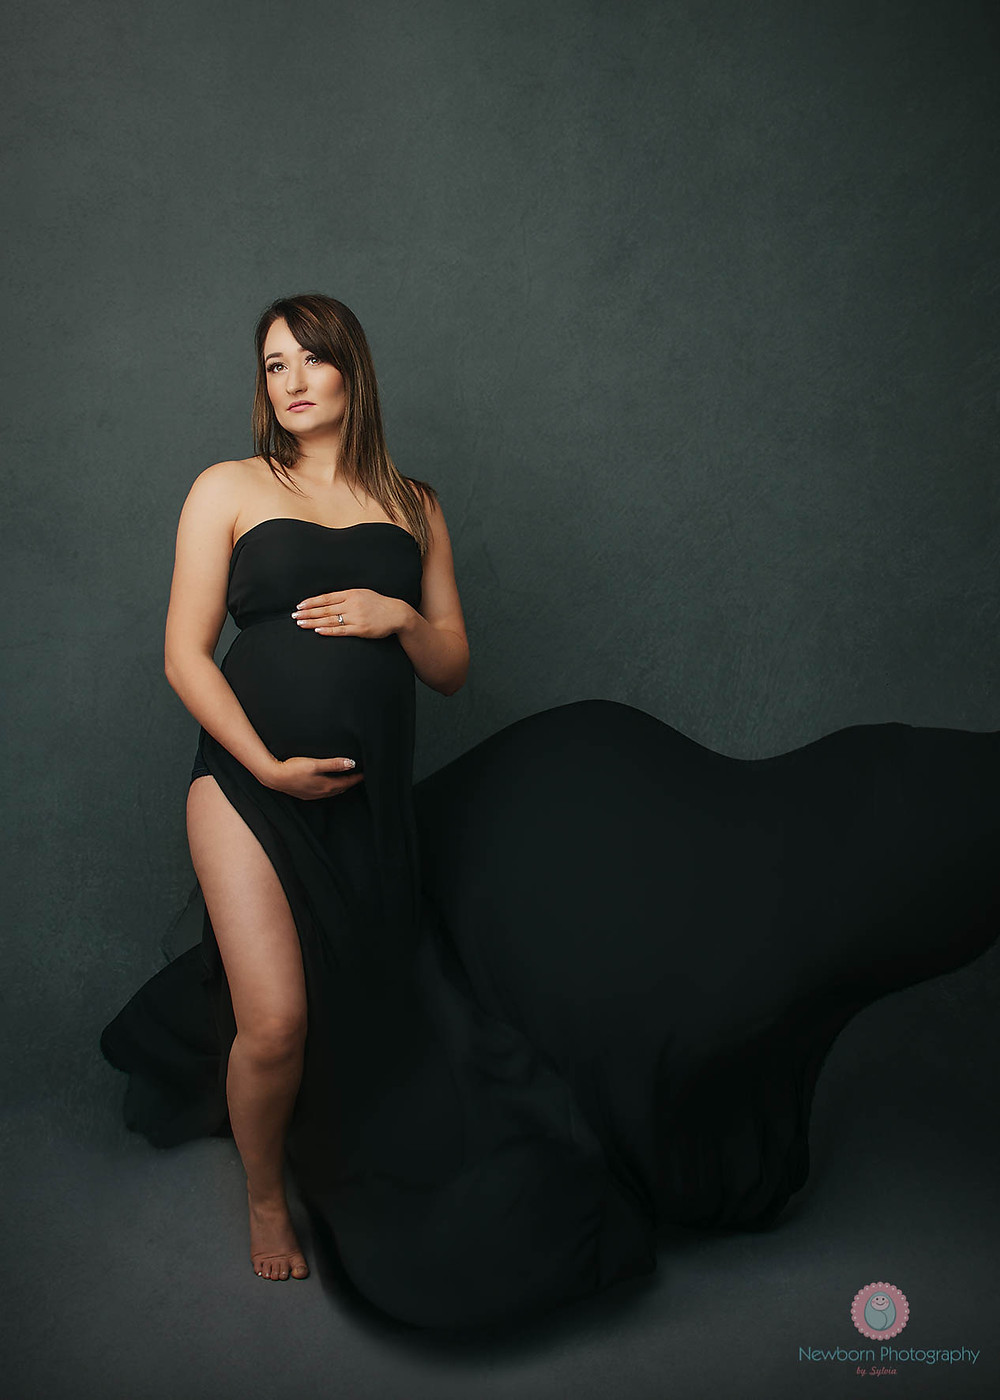 BRISTOL PREGNANCY PHOTOSHOOT